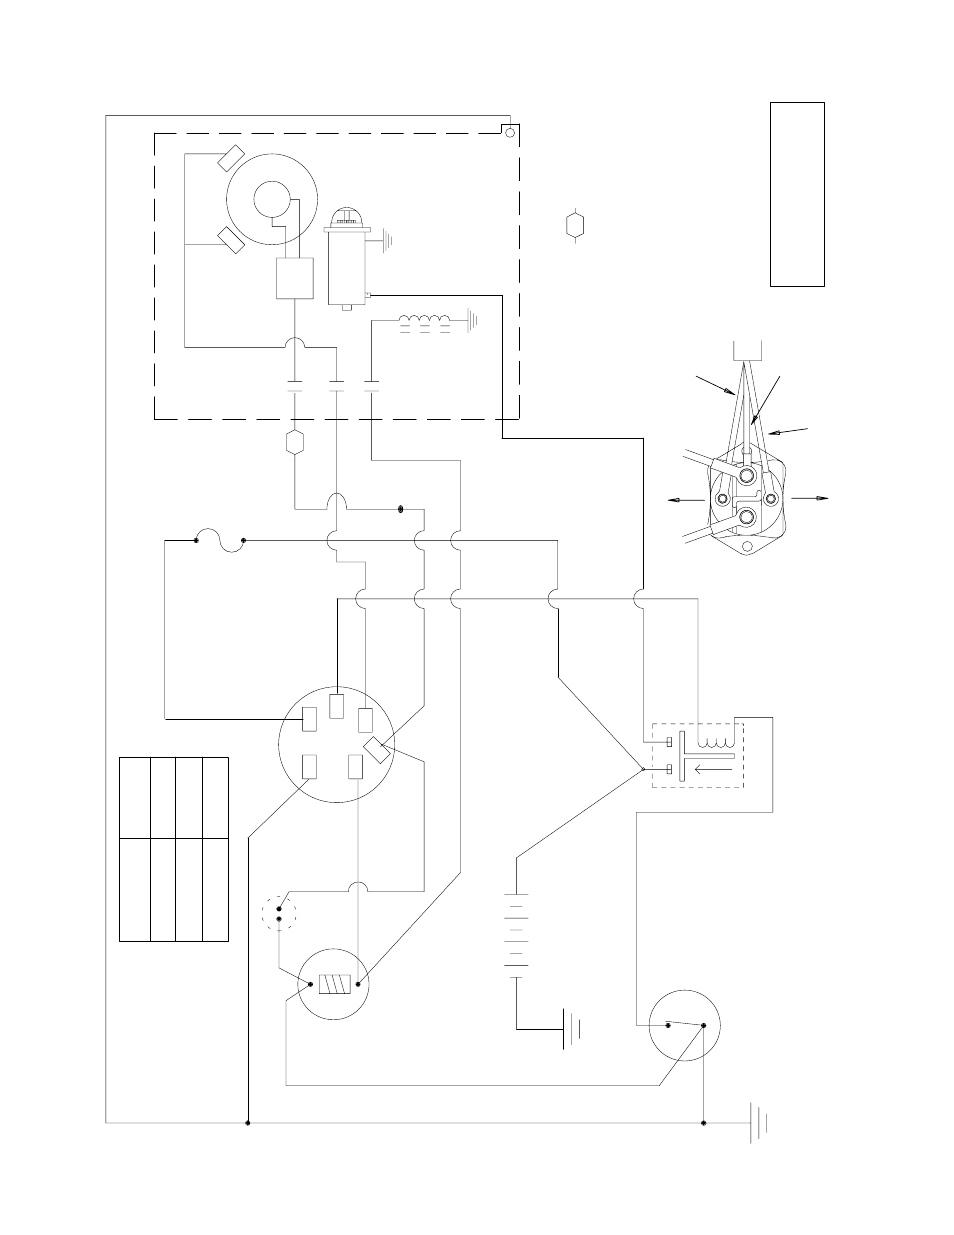 hight resolution of toro engine diagram wiring diagram insidetoro sand pro engine wiring schematic wiring diagram topics toro snowblower